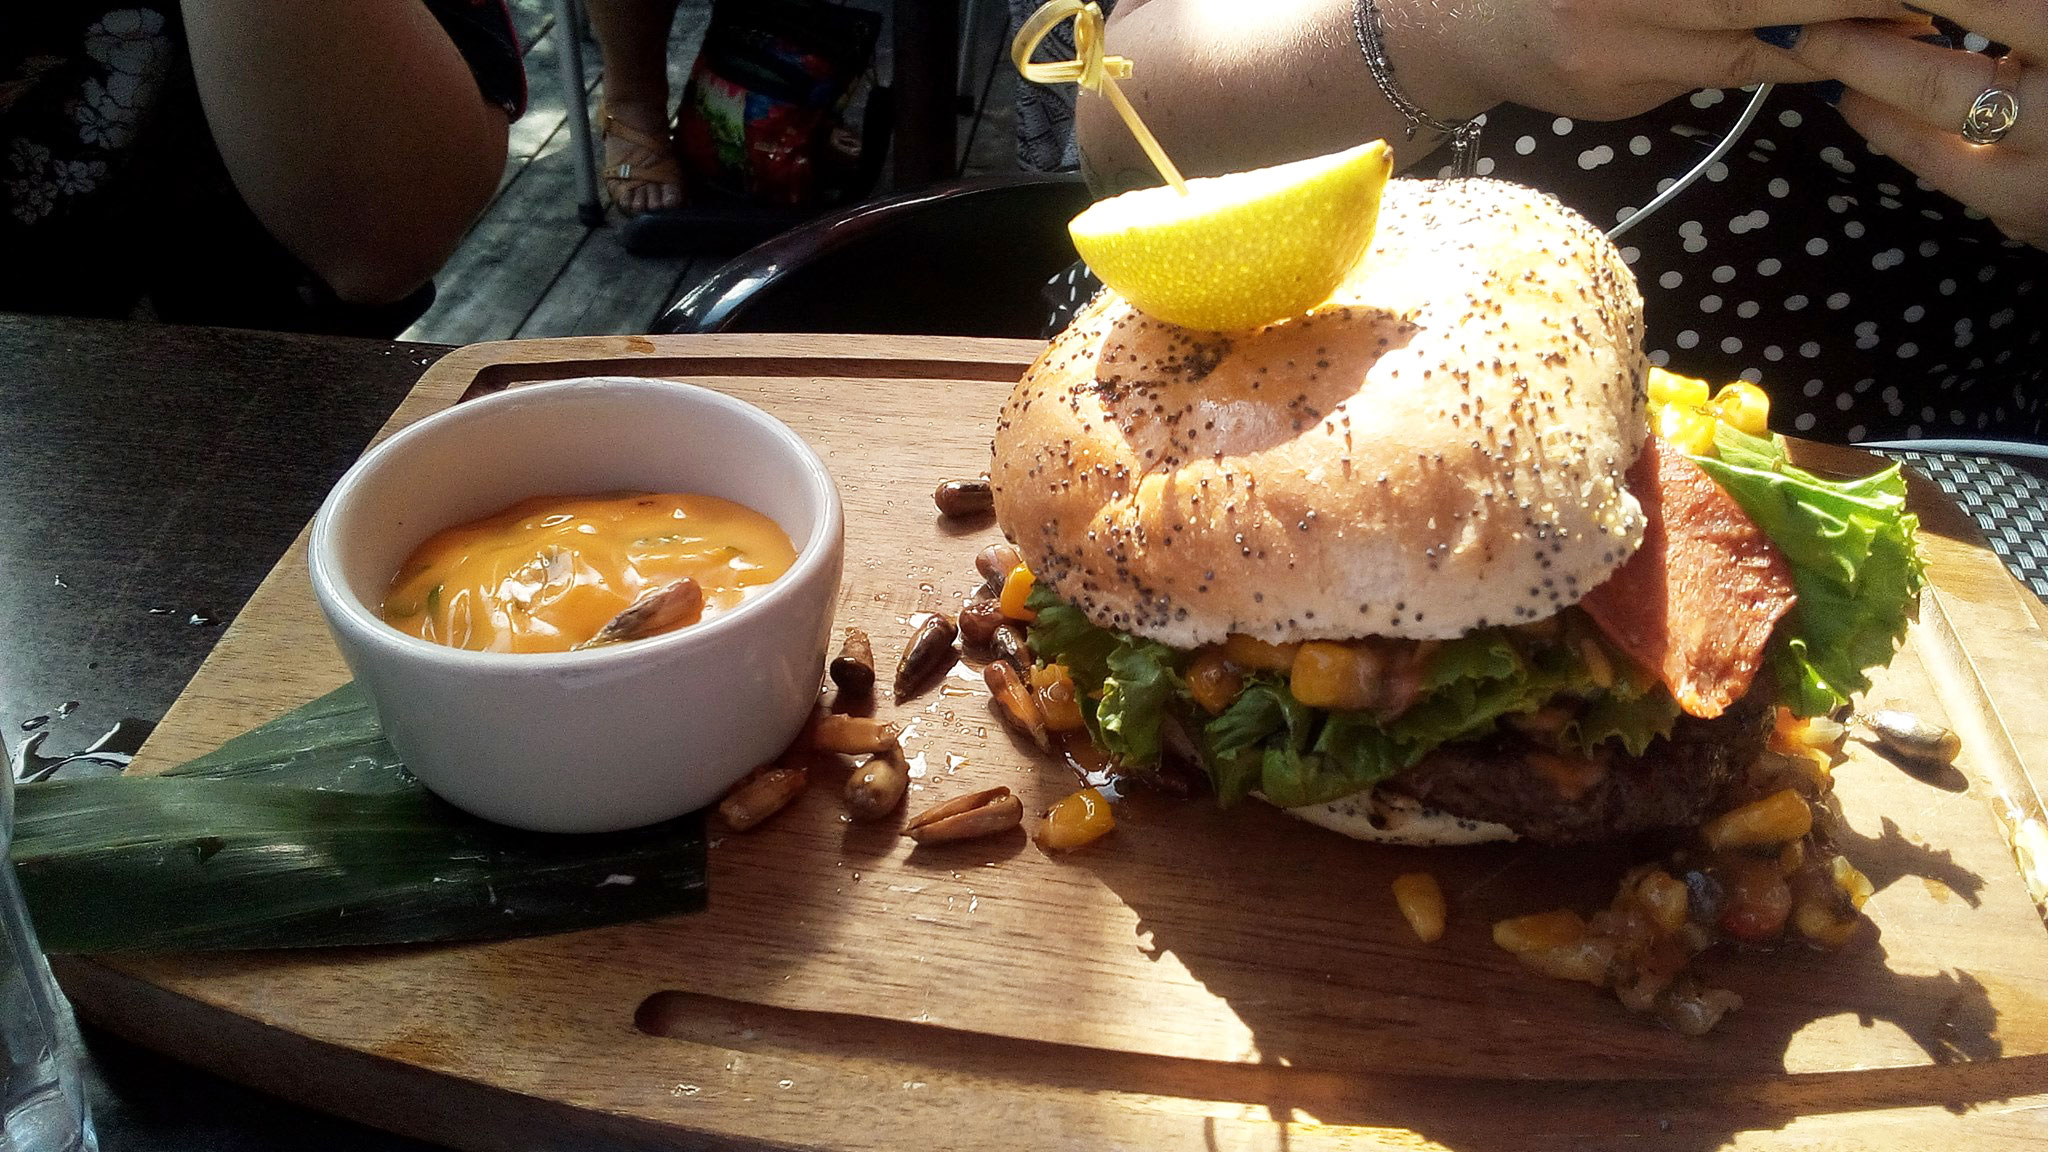 le délice, burger week, quebec